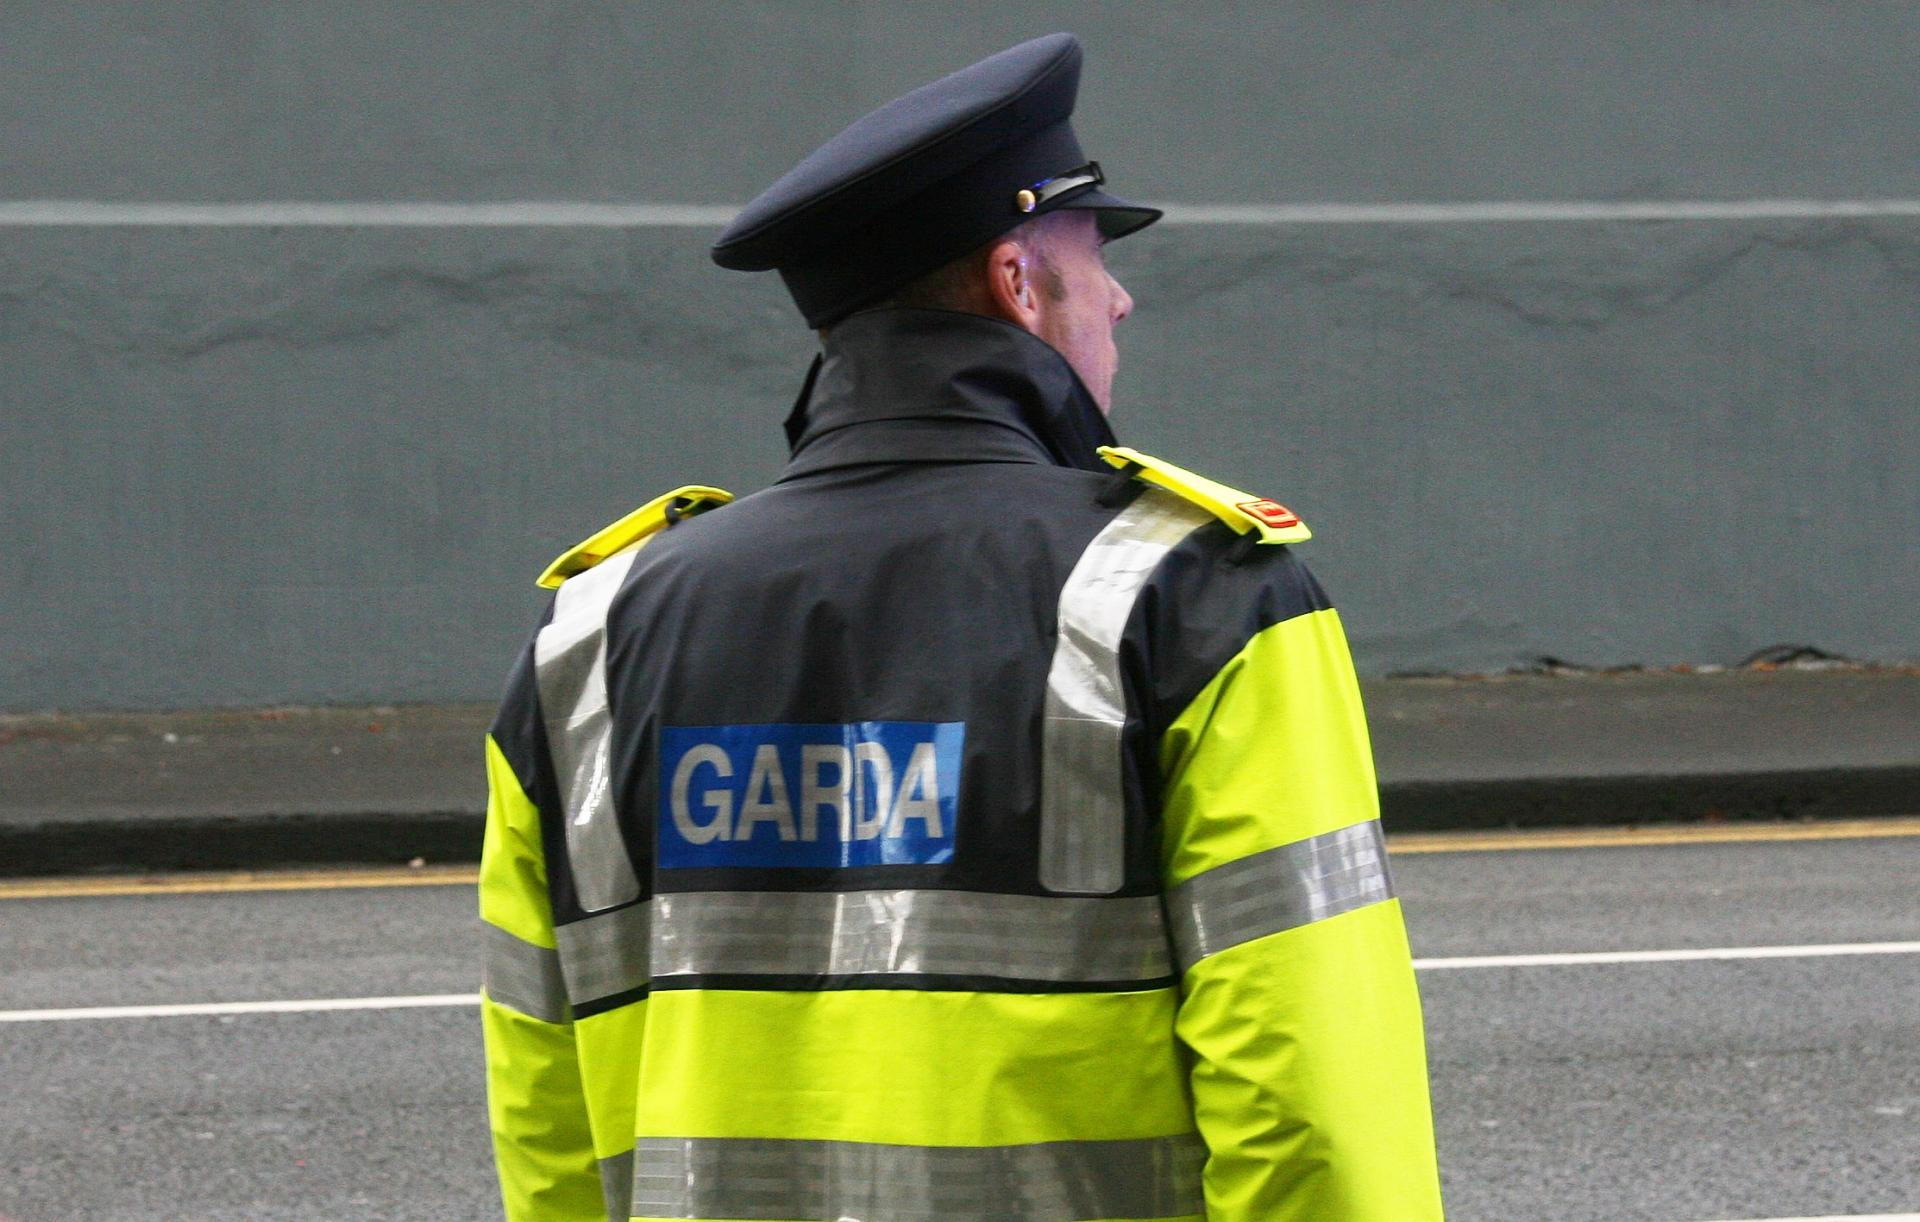 Man who died in incident at Kildare factory has been named